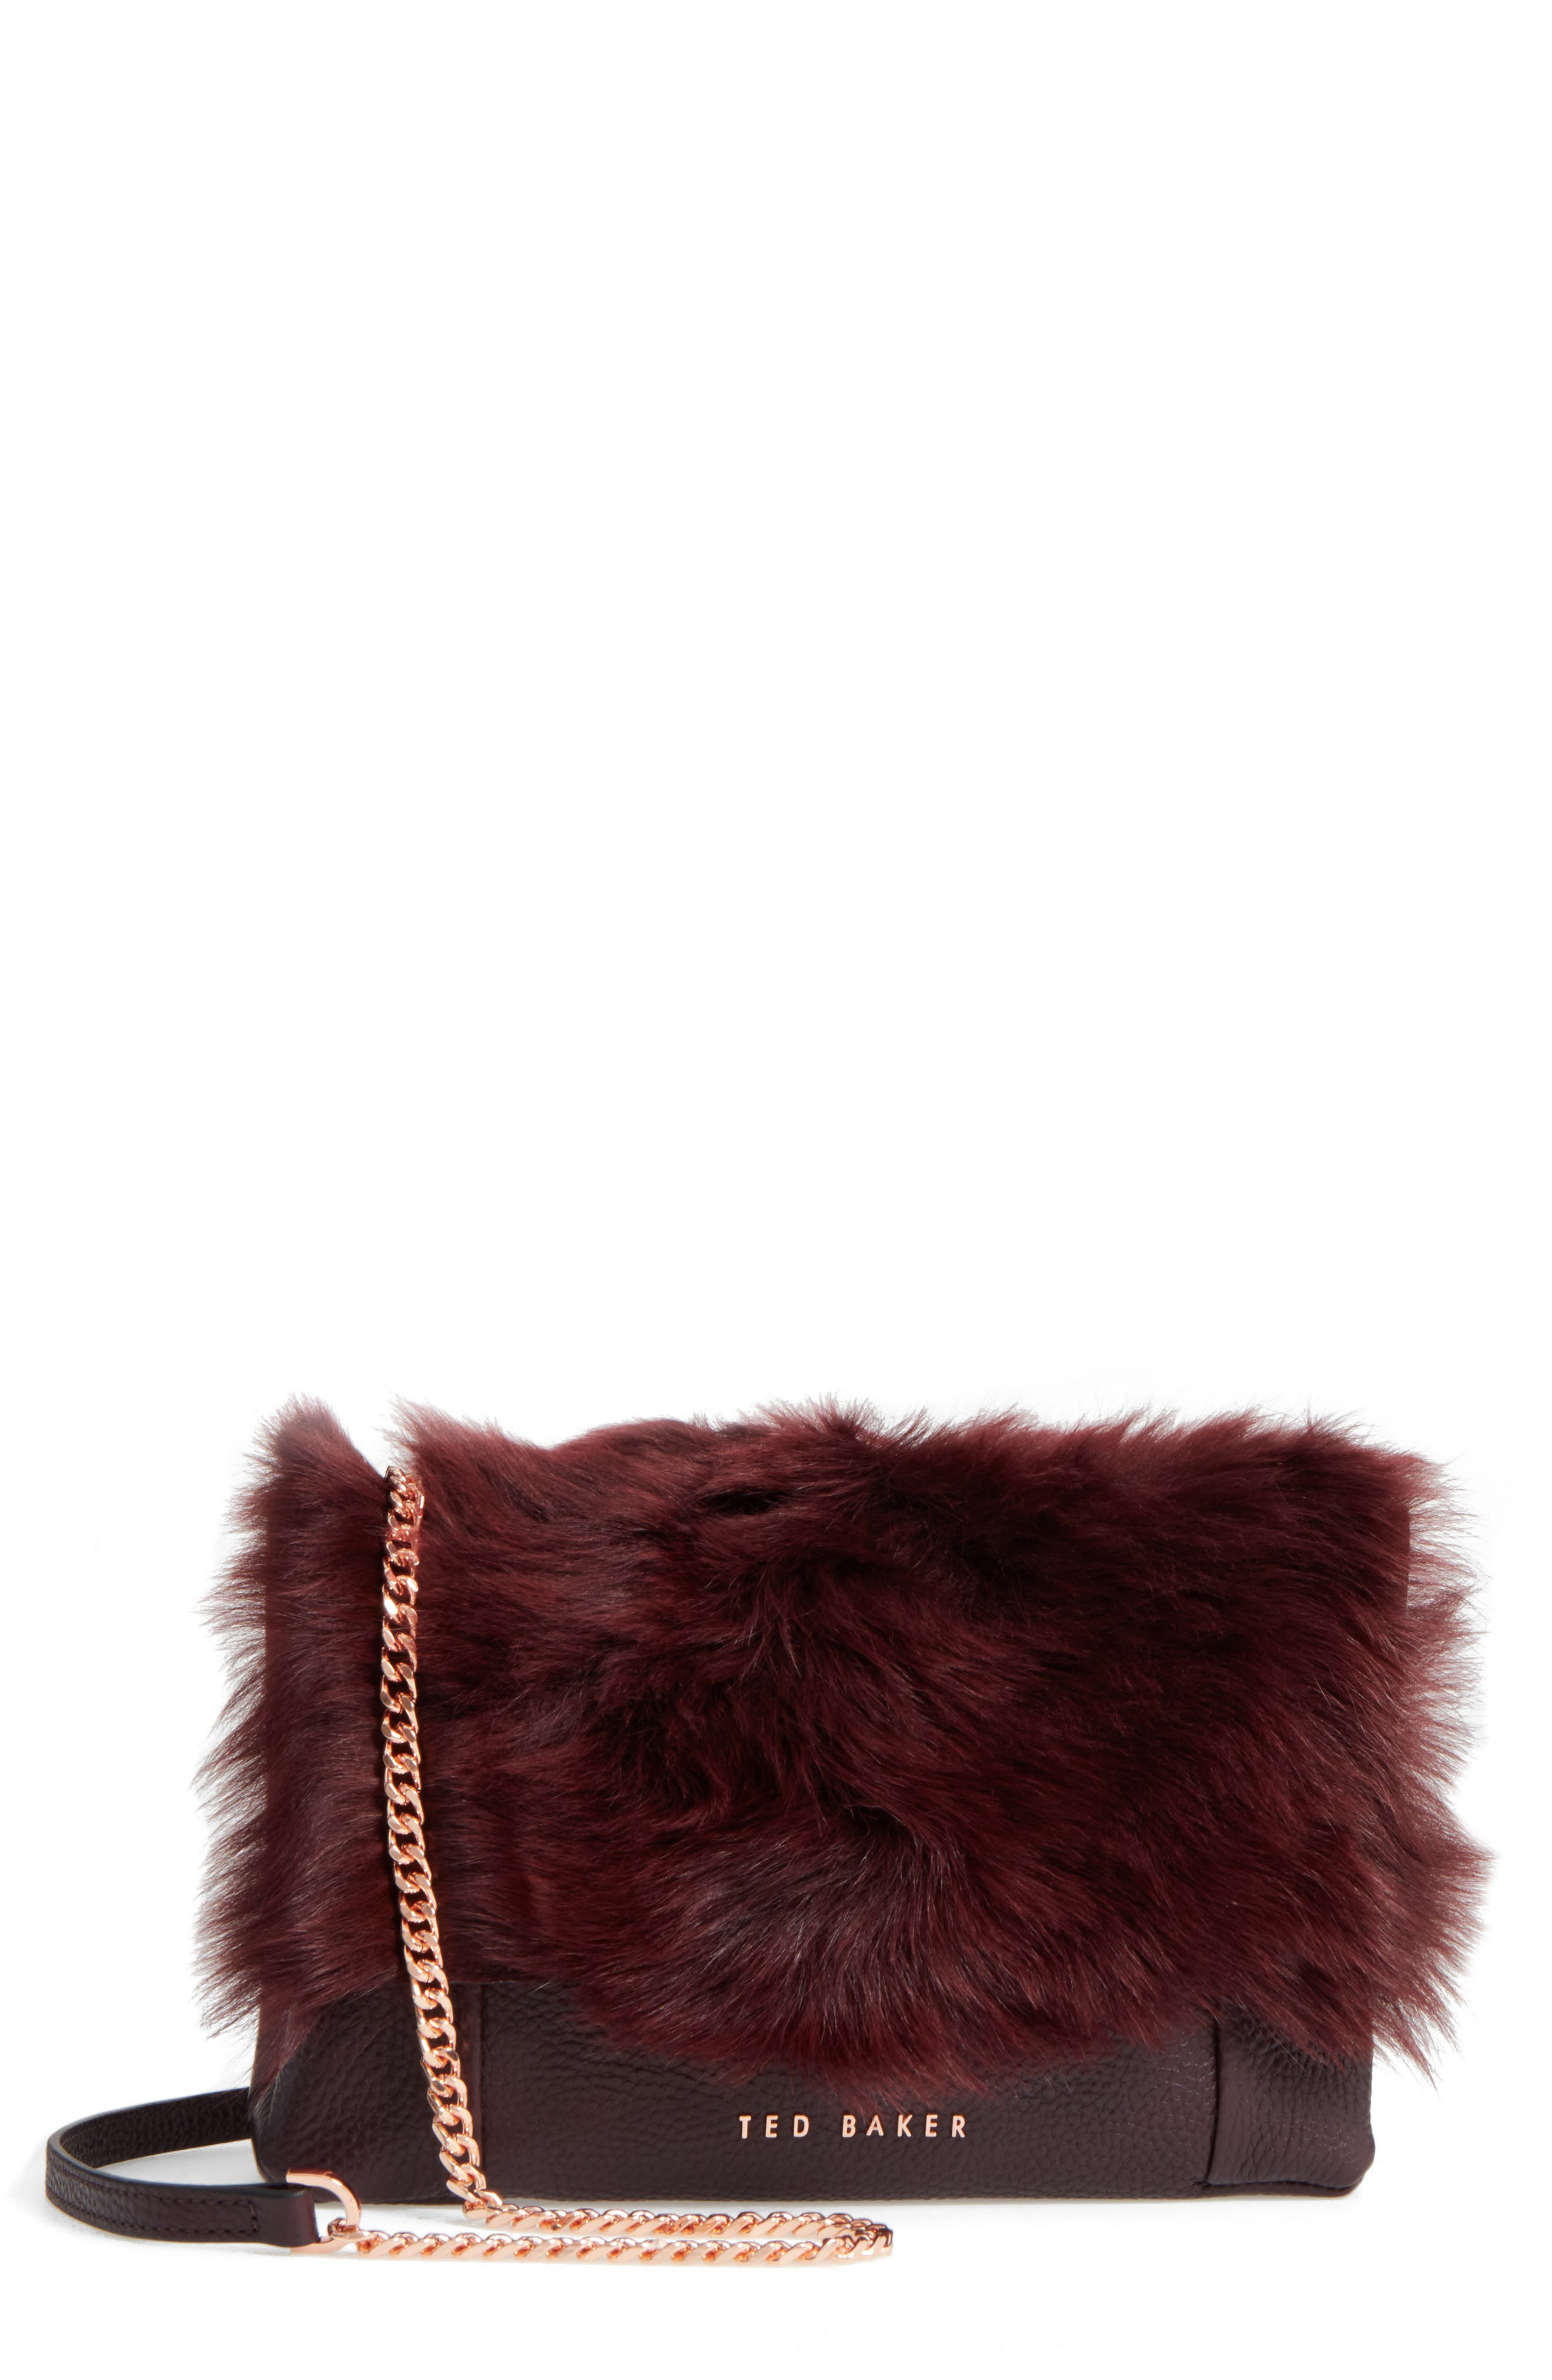 Alternate Image 1 Selected - Ted Baker London Fuzzi Genuine Shearling & Leather Convertible Crossbody Bag